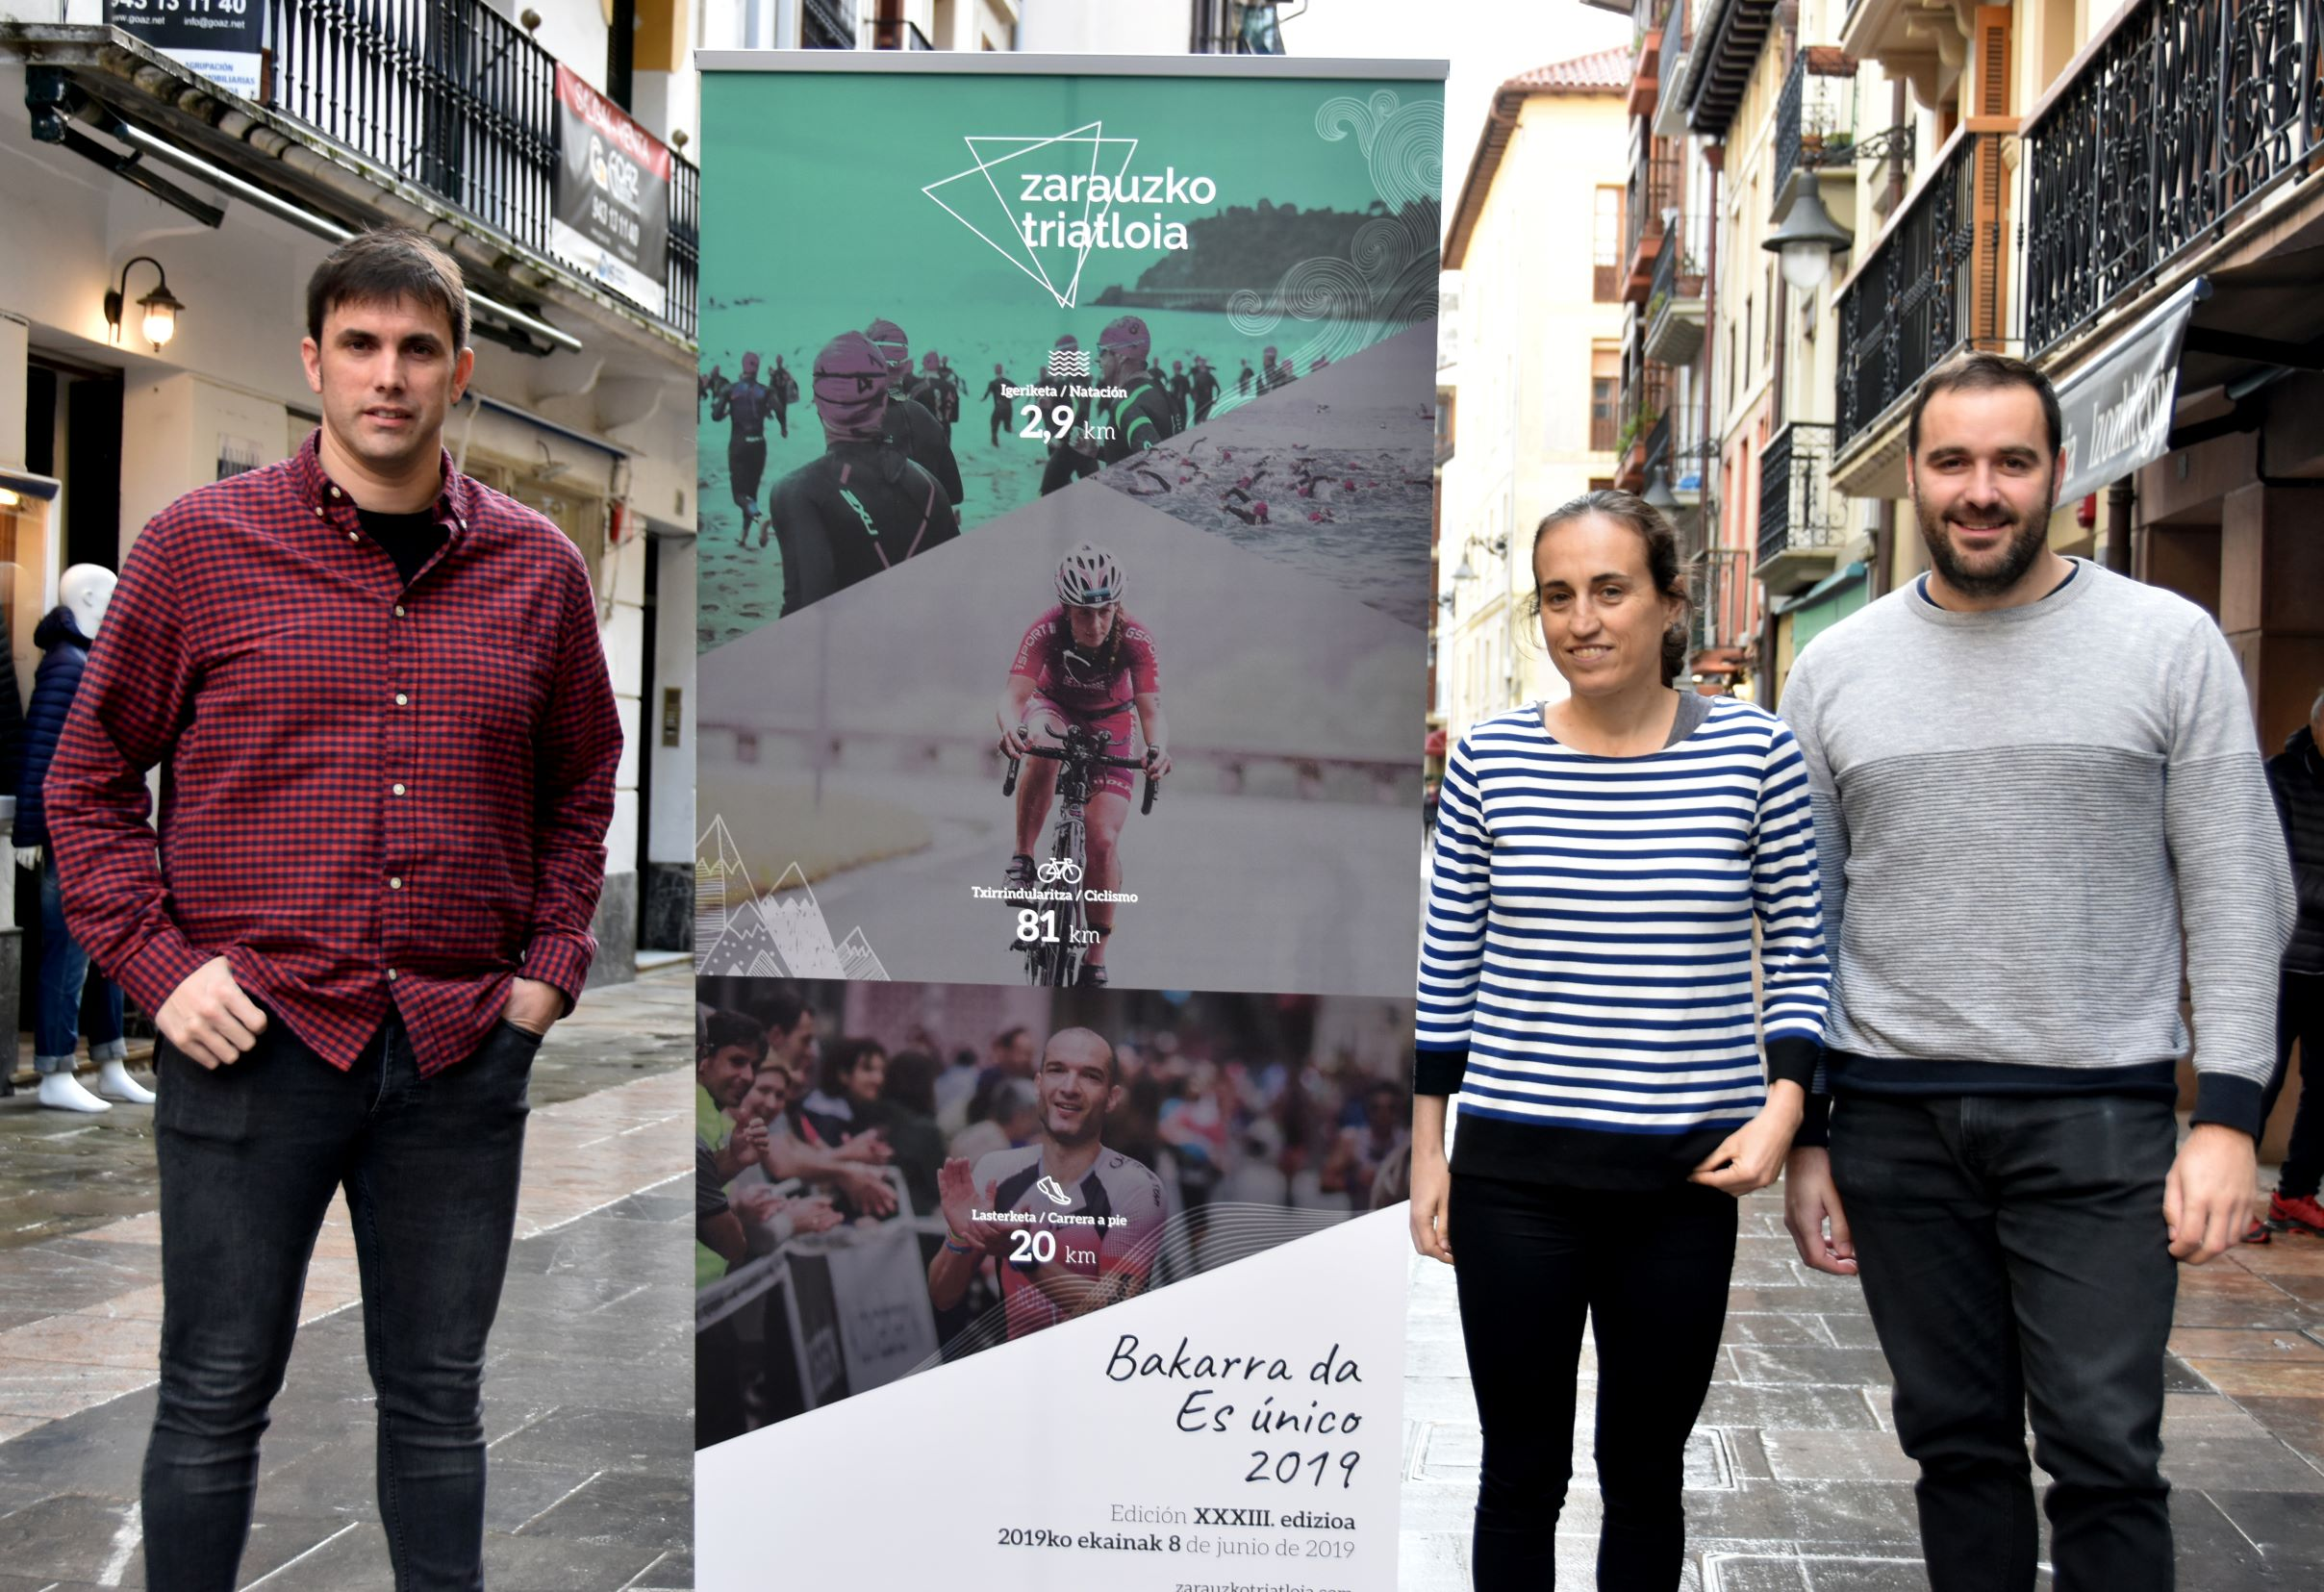 99 Women Will Participate In The 33rd Edition Of Zarauzko Triatloia, 58% More Than Last Year